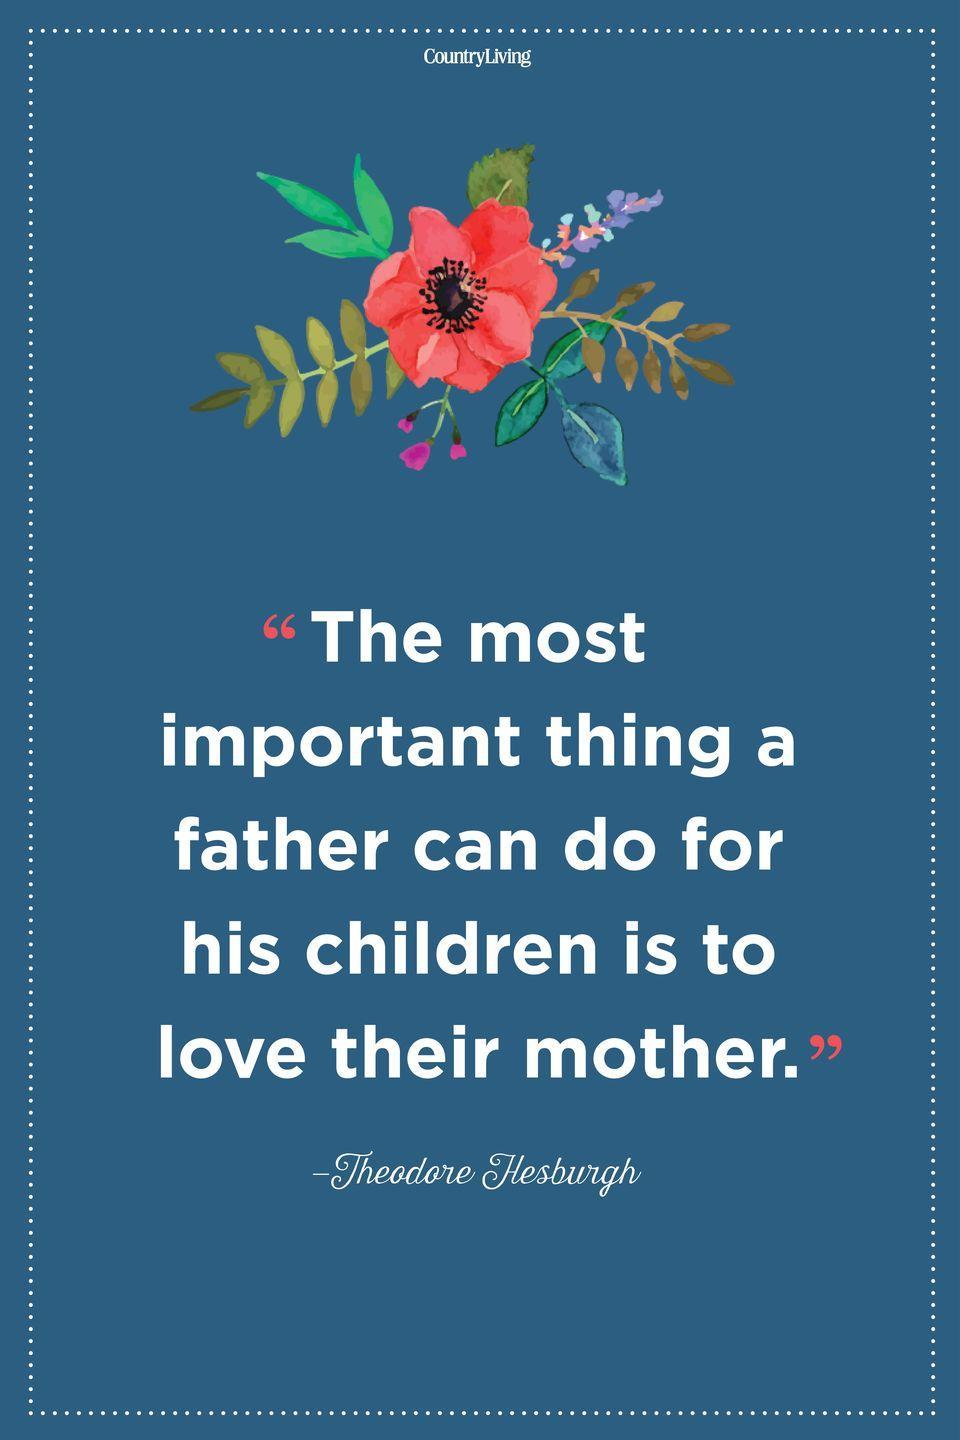 "<p>""The most important thing a father can do for his children is to love their mother.""</p>"